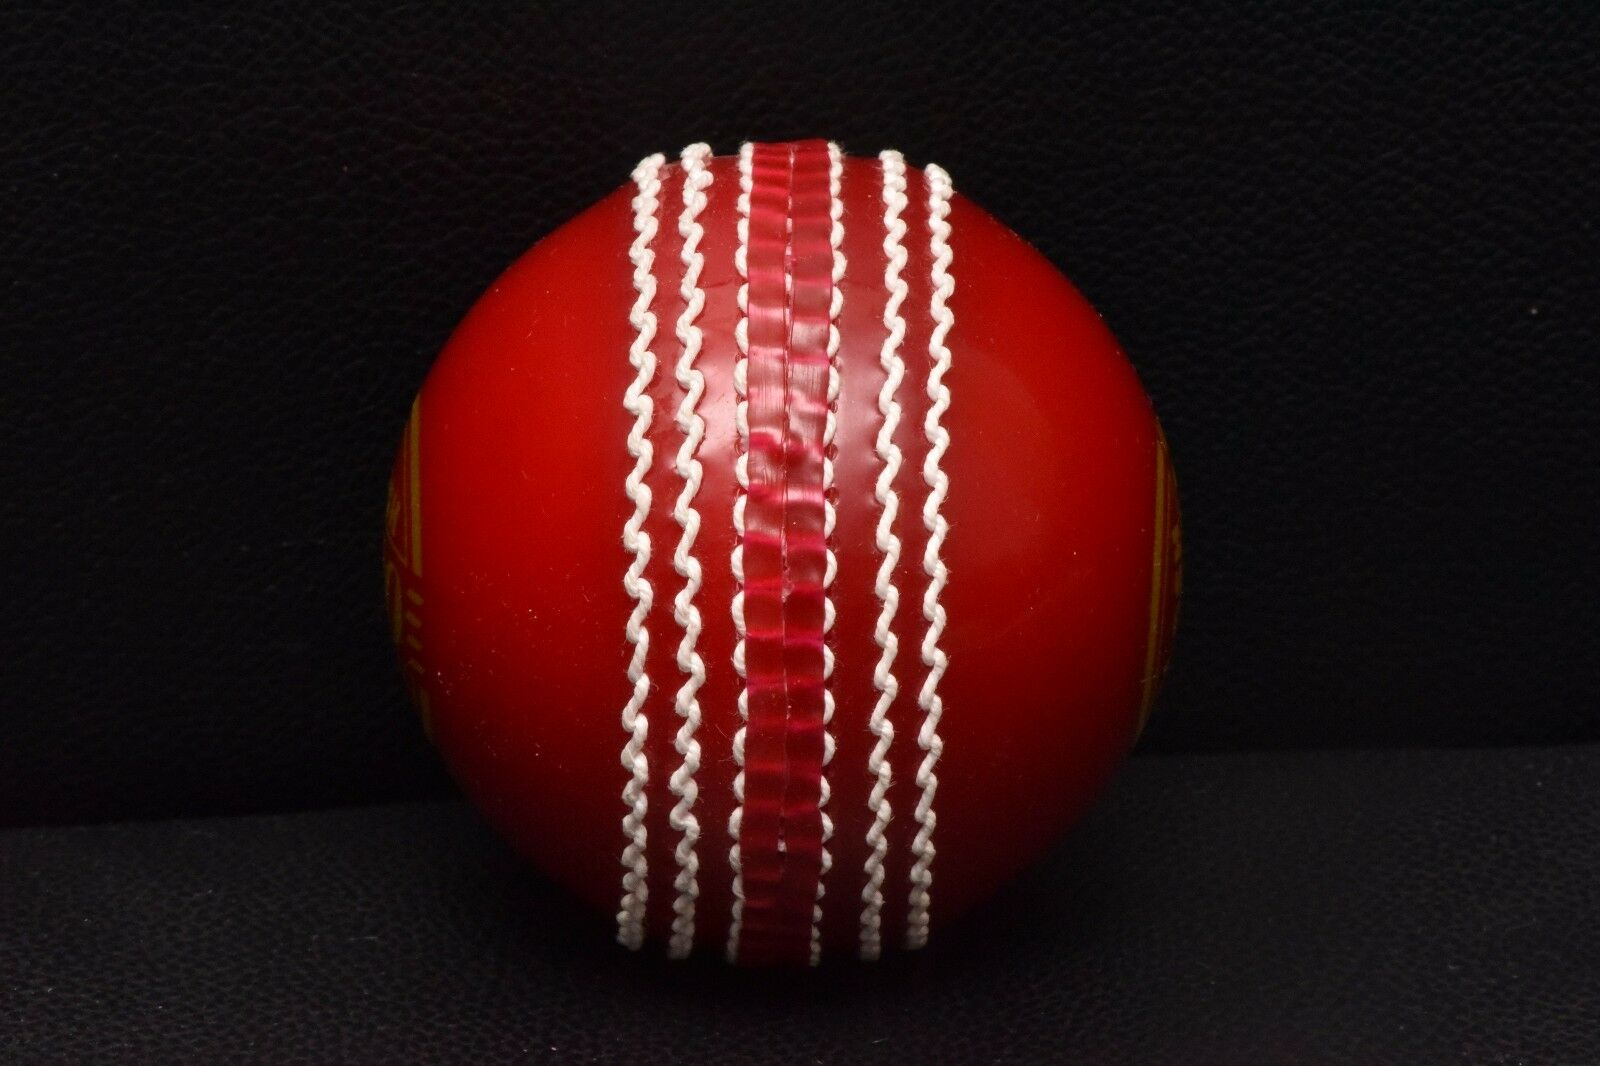 Cricket Nd Trainer Incrediball Cricket Ball Junior Only Cricket